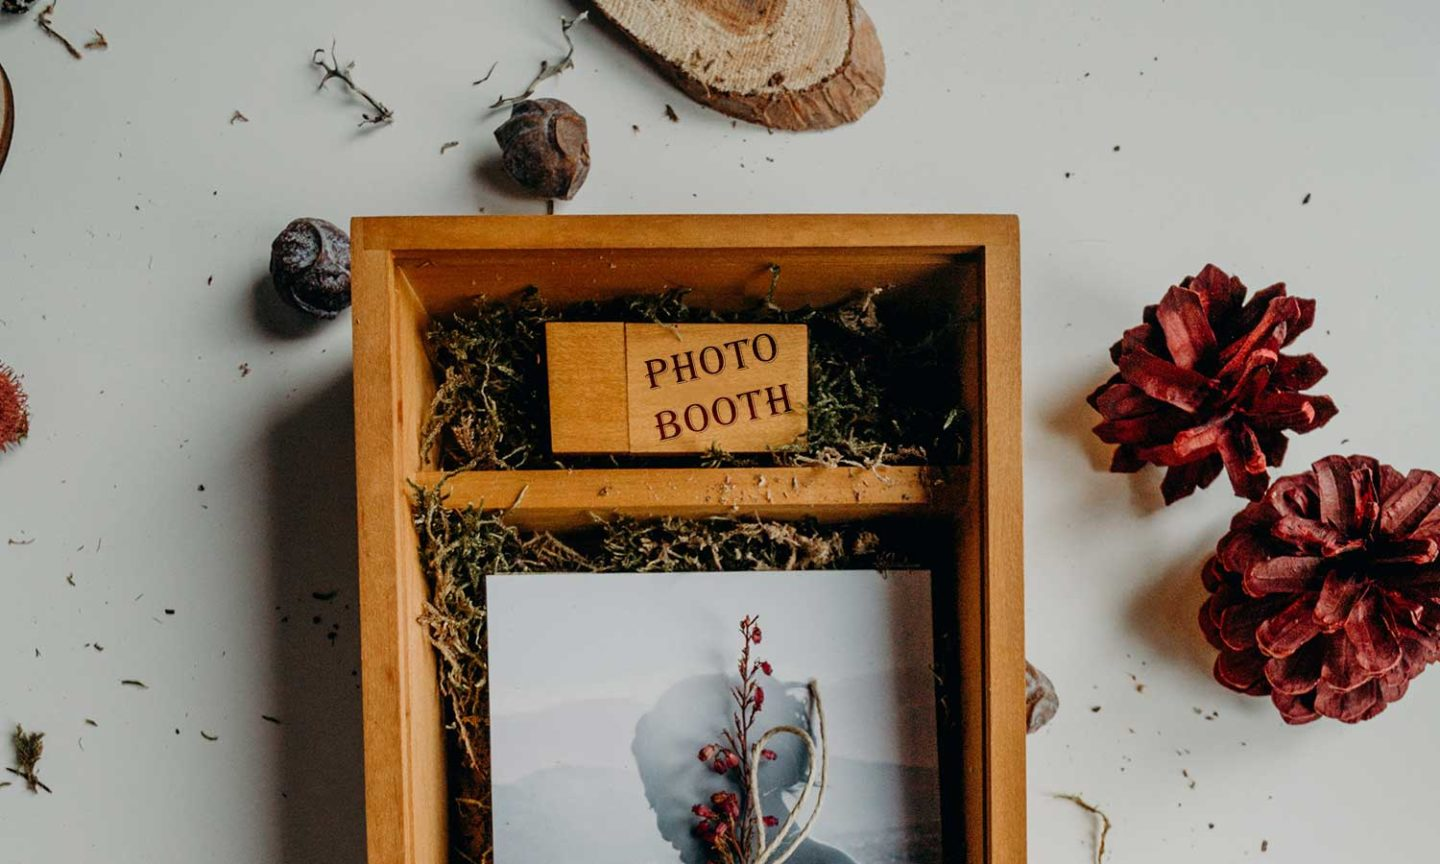 Renphotos Wooden Photobooth Concept Image